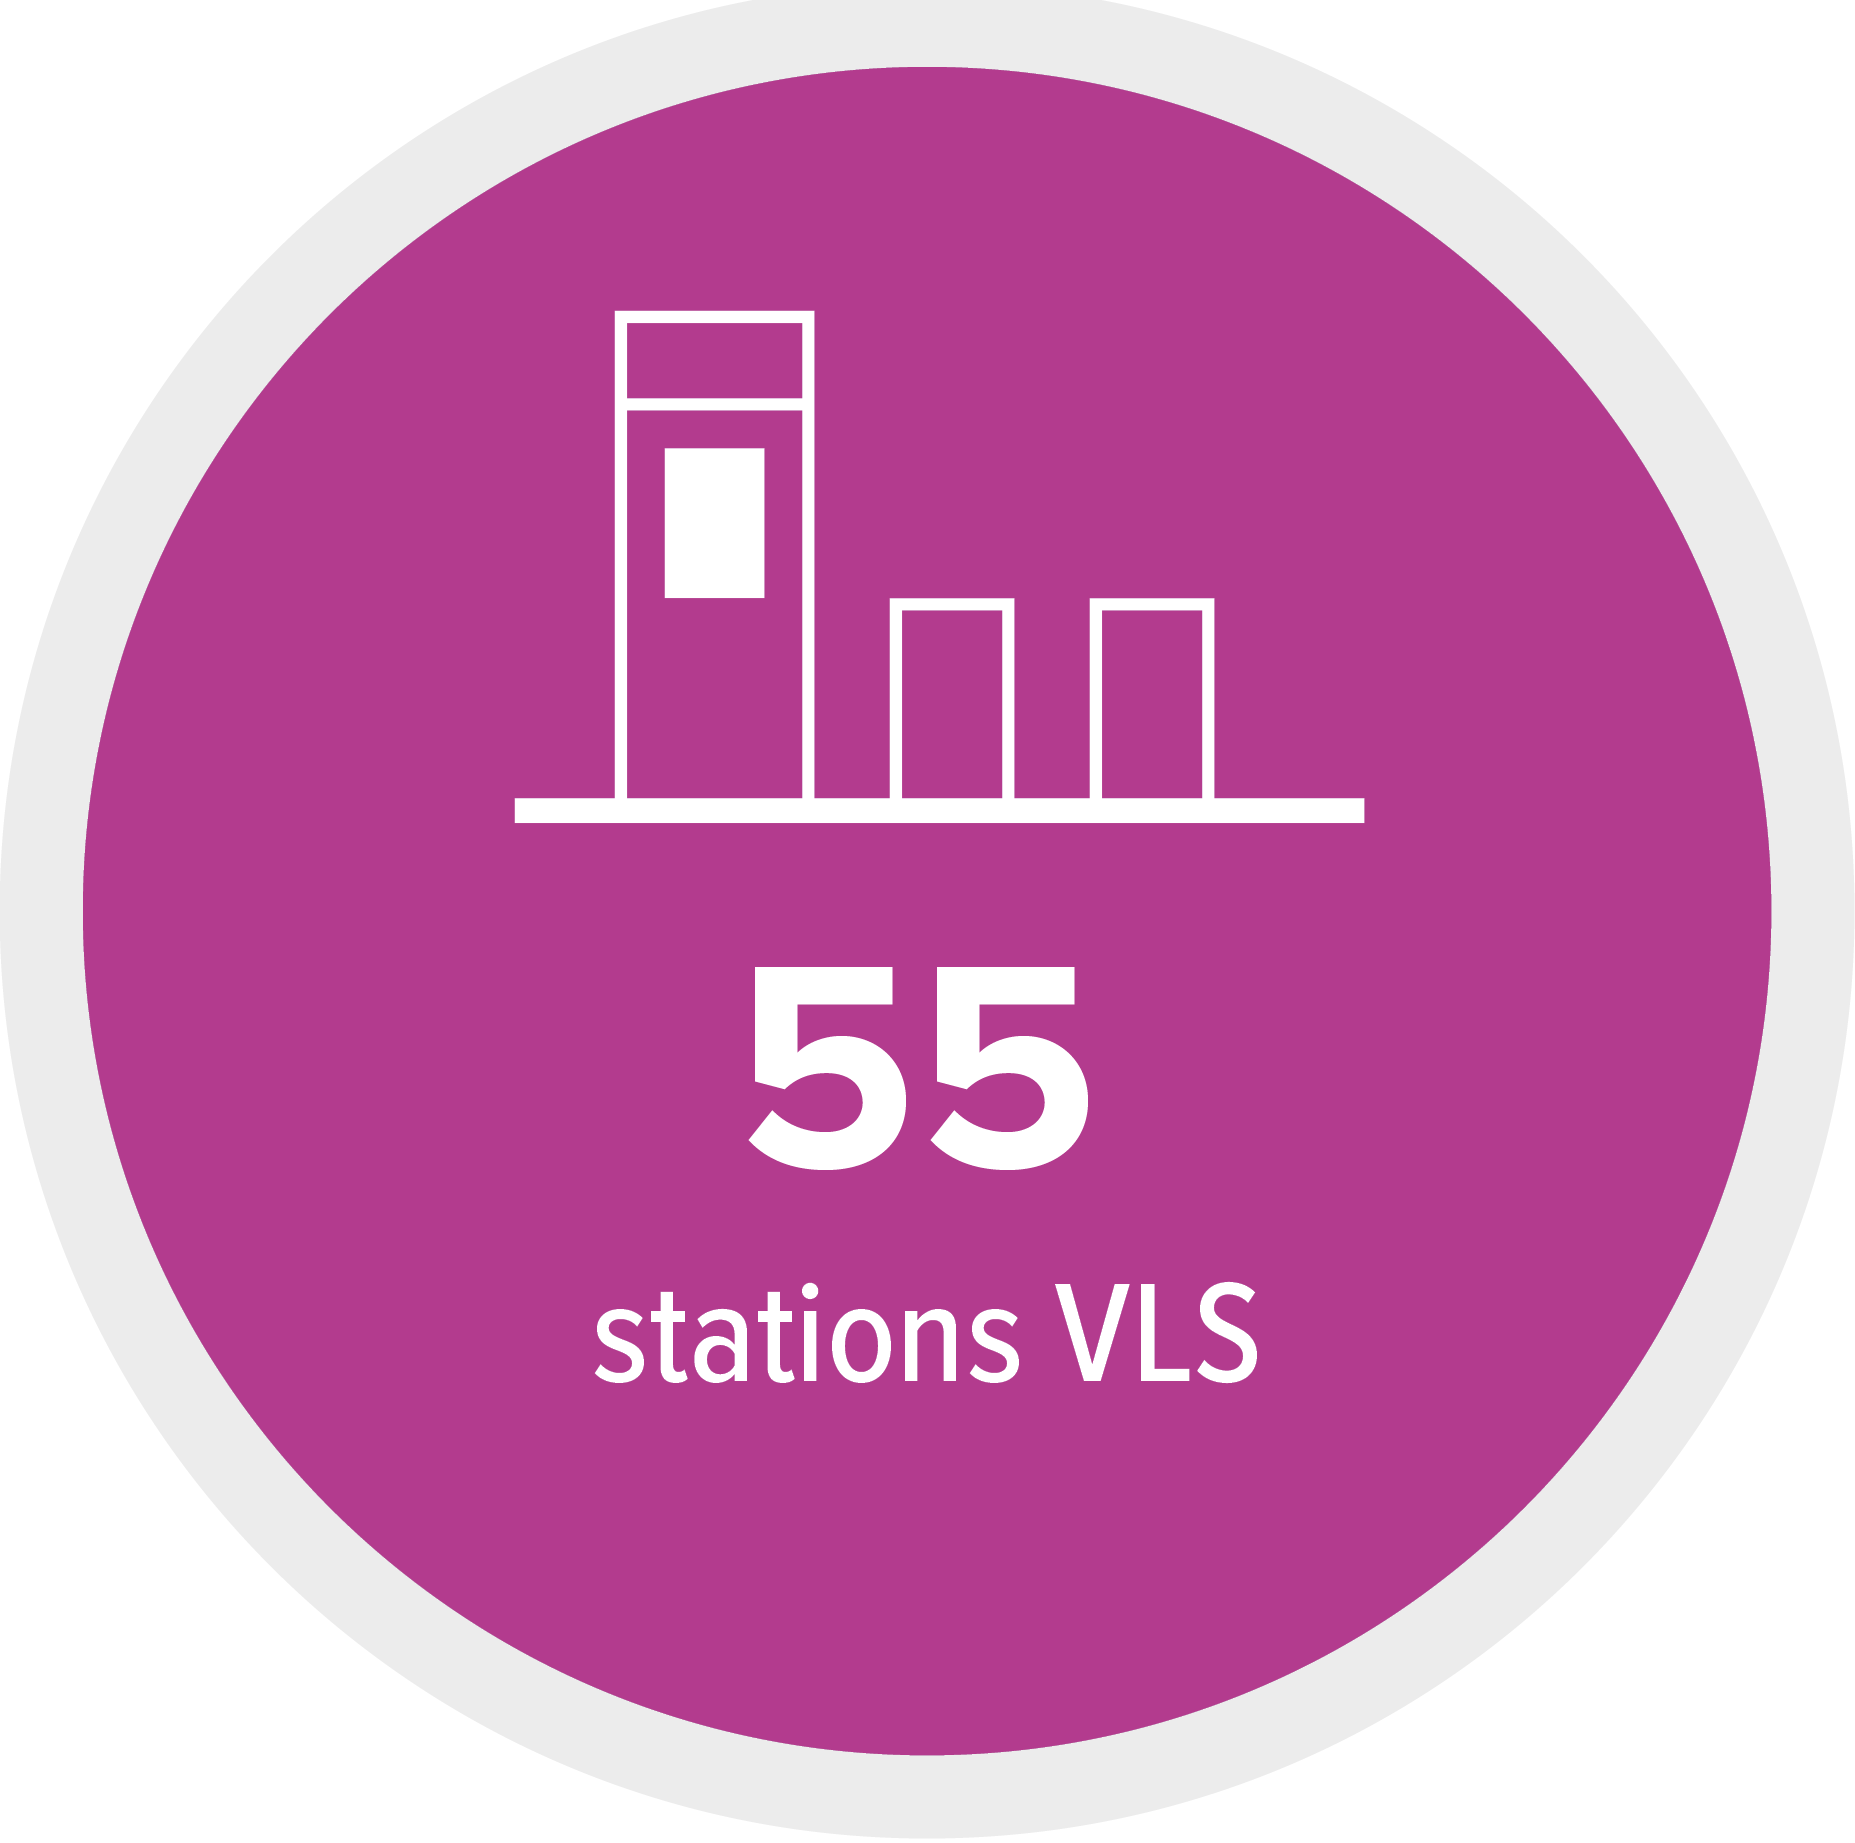 55 stations